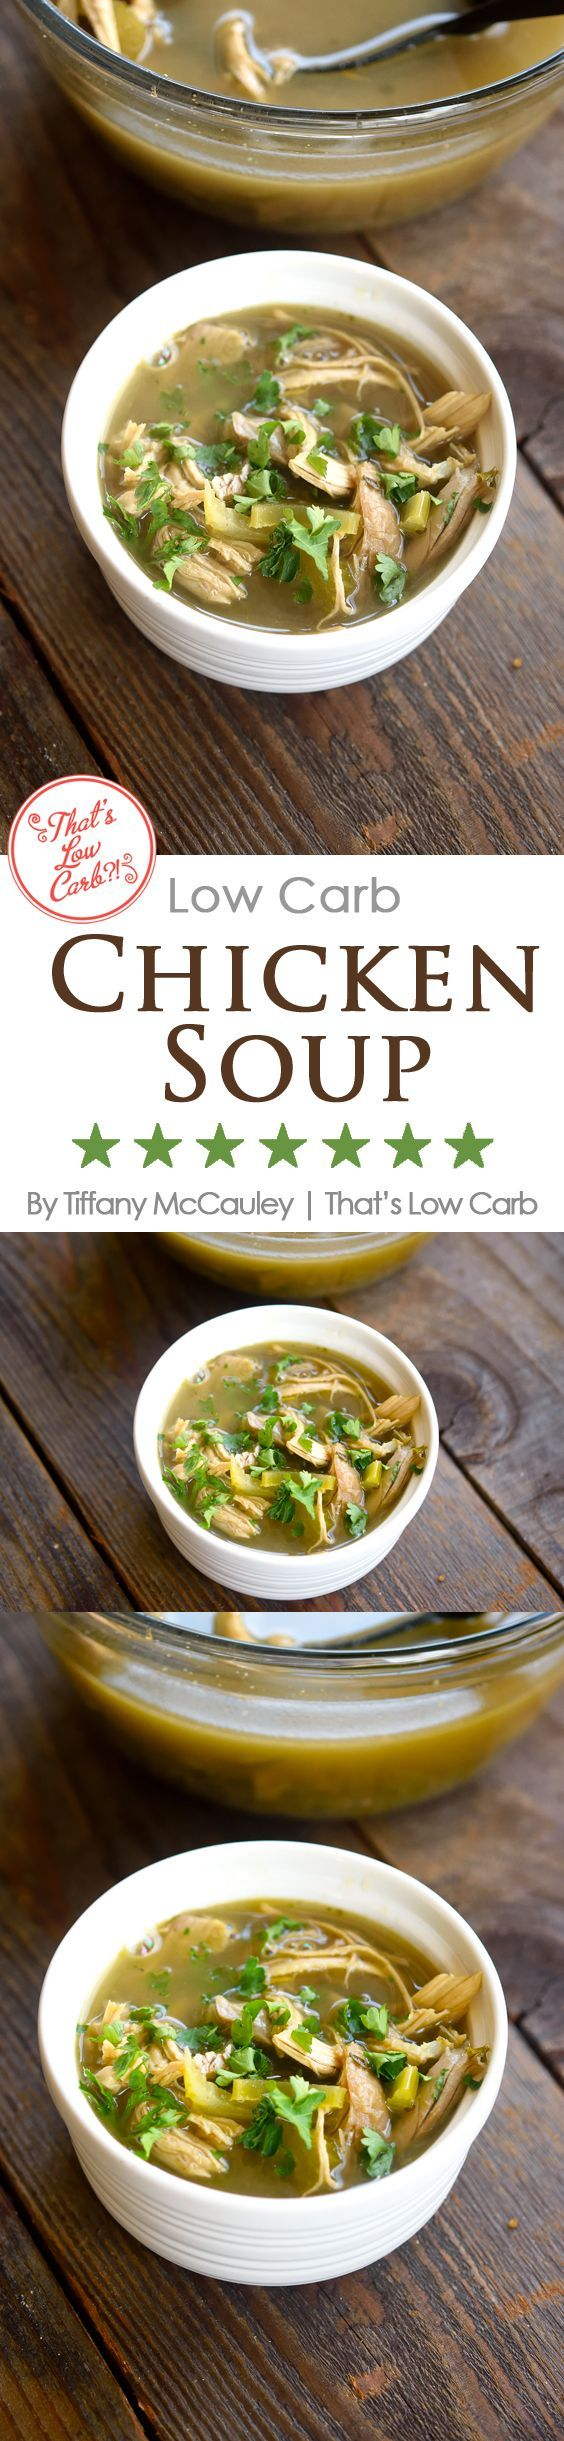 A delicious, low carb chicken soup you can make from a rotisserie chicken. Easy! Give it a try for dinner tonight! ~ www.thatslowcarb.com